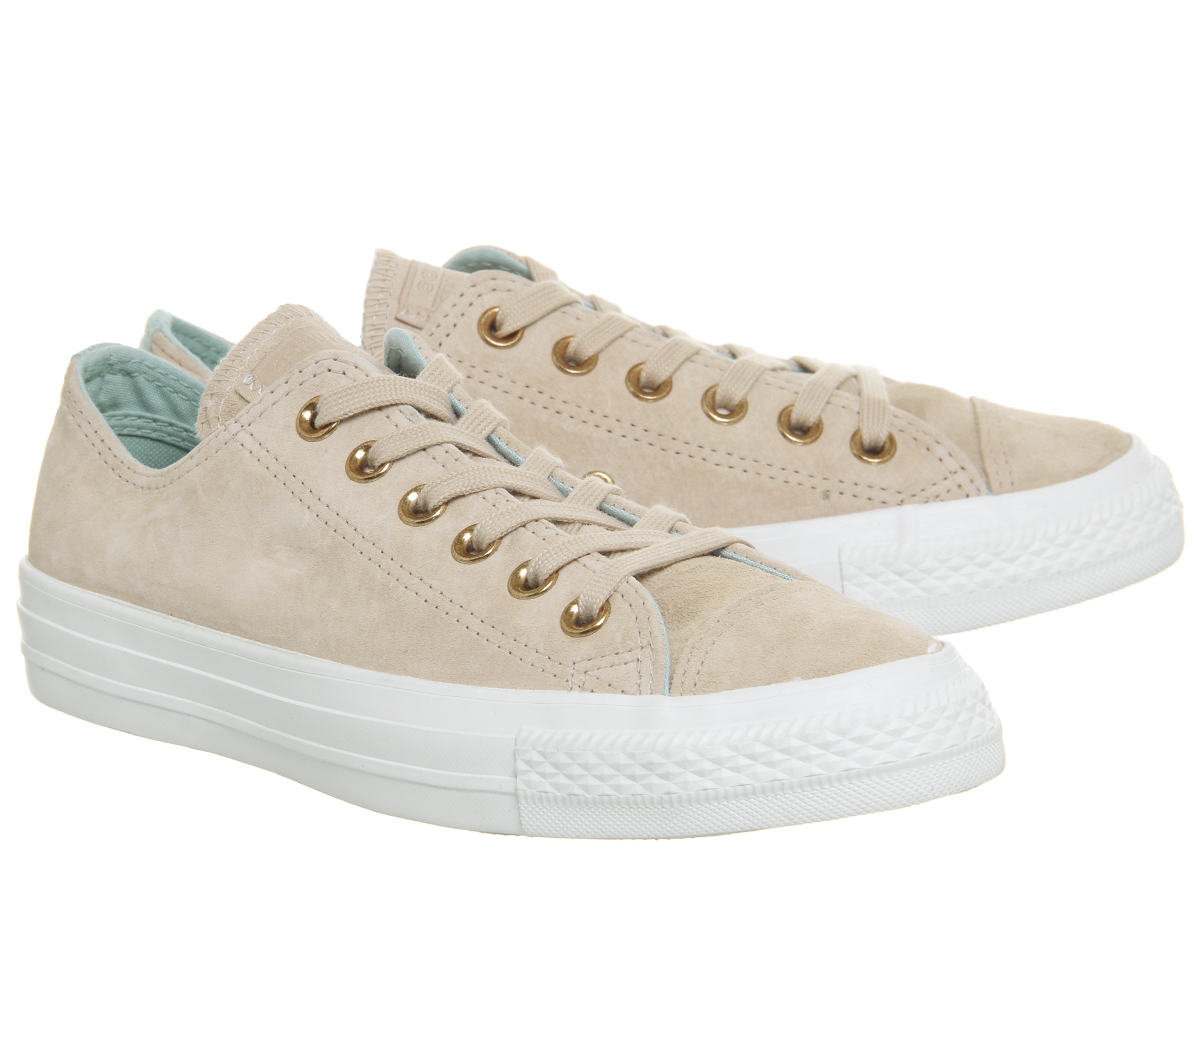 89bfe6d4a91 Womens Converse Allstar Low Leather Particle Beige Ocean Bliss White ...